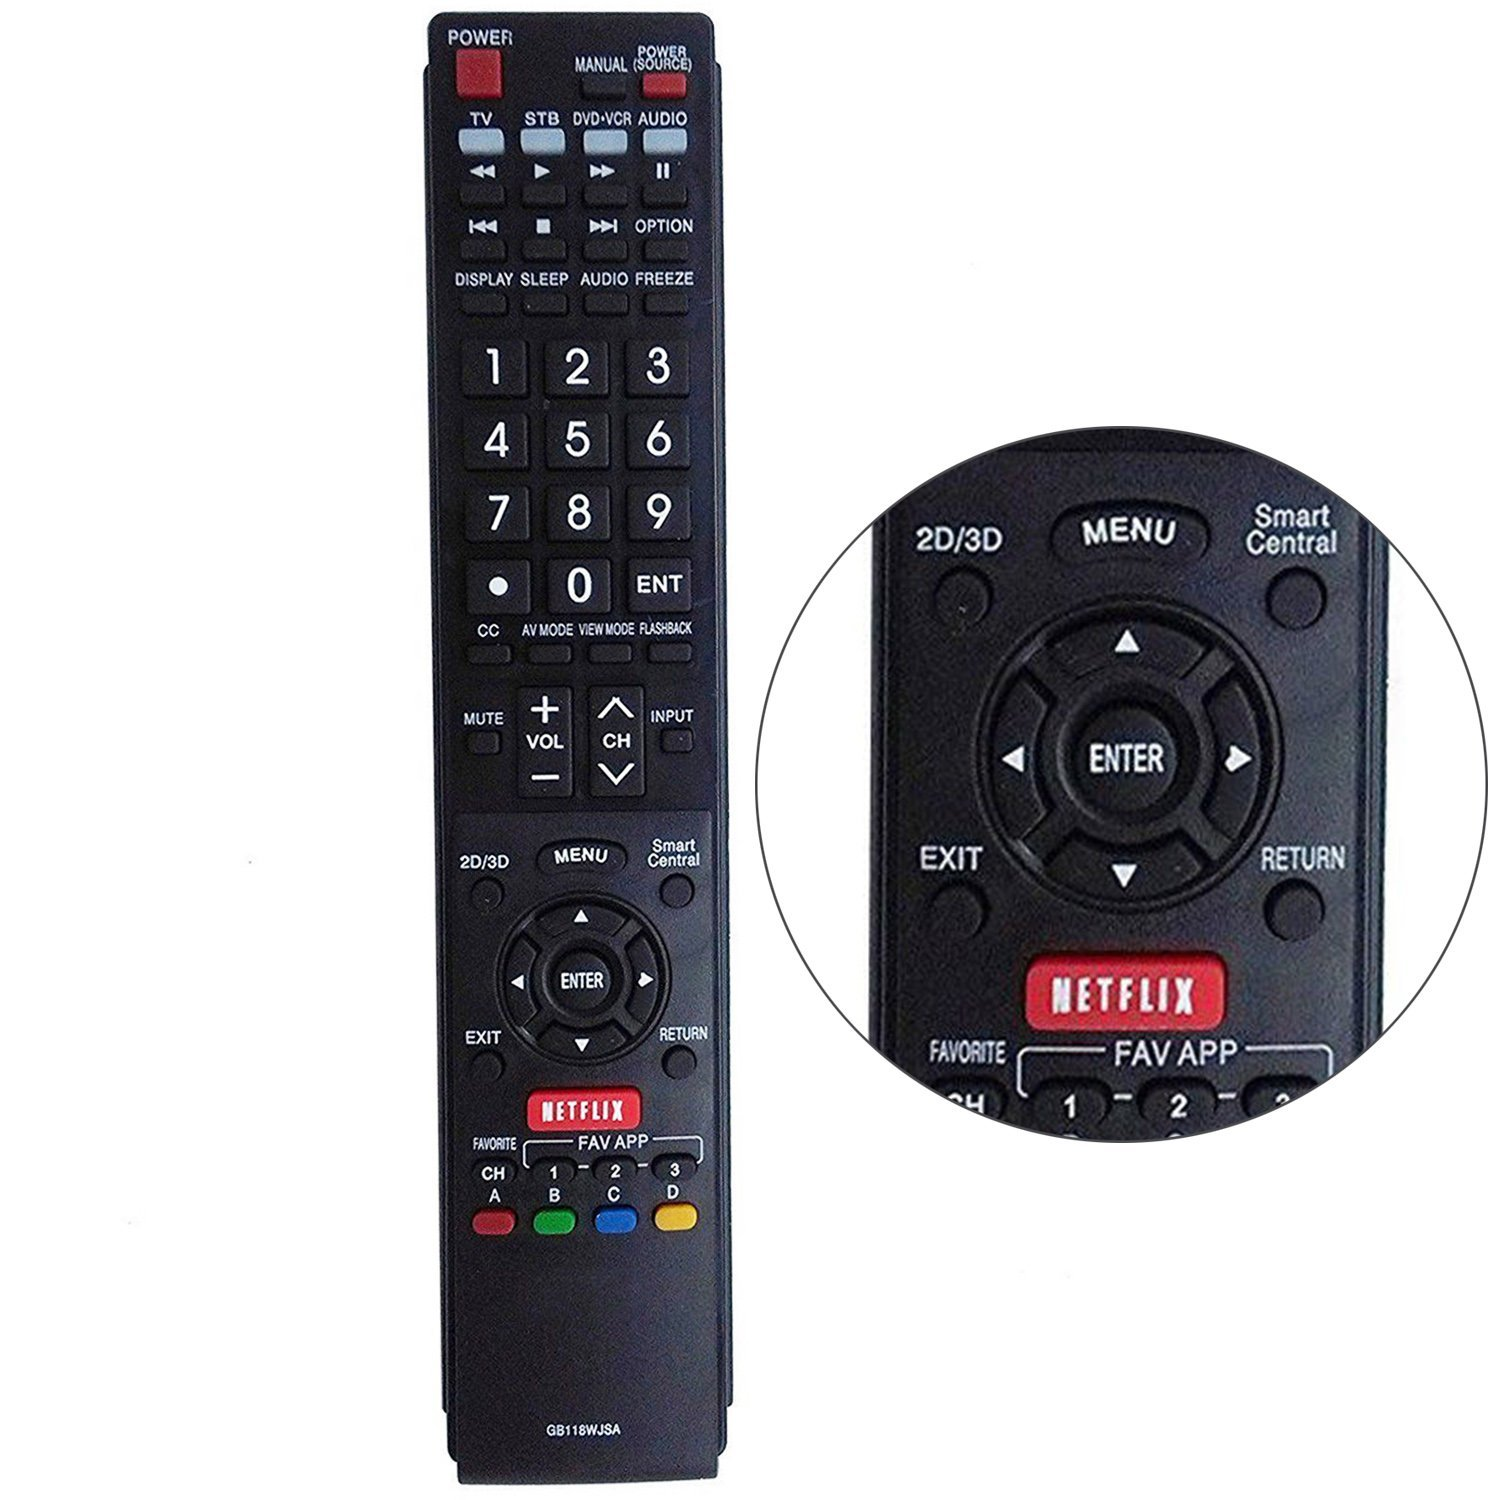 Control Remoto GB118WJSA Smart TV Sharp Aquos TV GB005WJS...